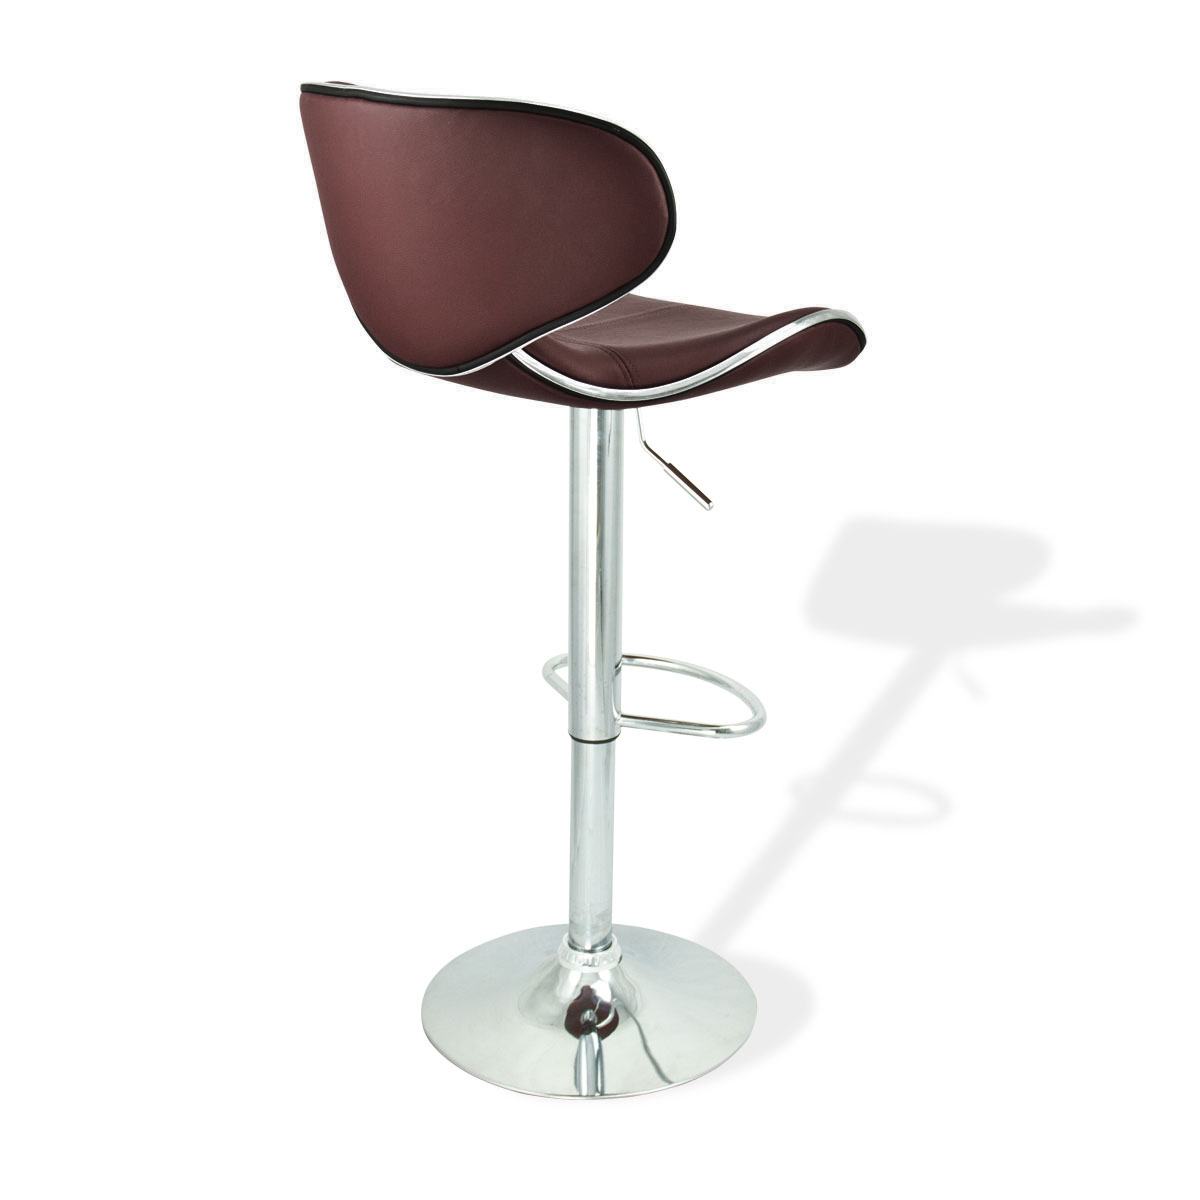 revolving chair with net ikea antilop high reviews 2 modern barstool swivel leather adjustable hydraulic